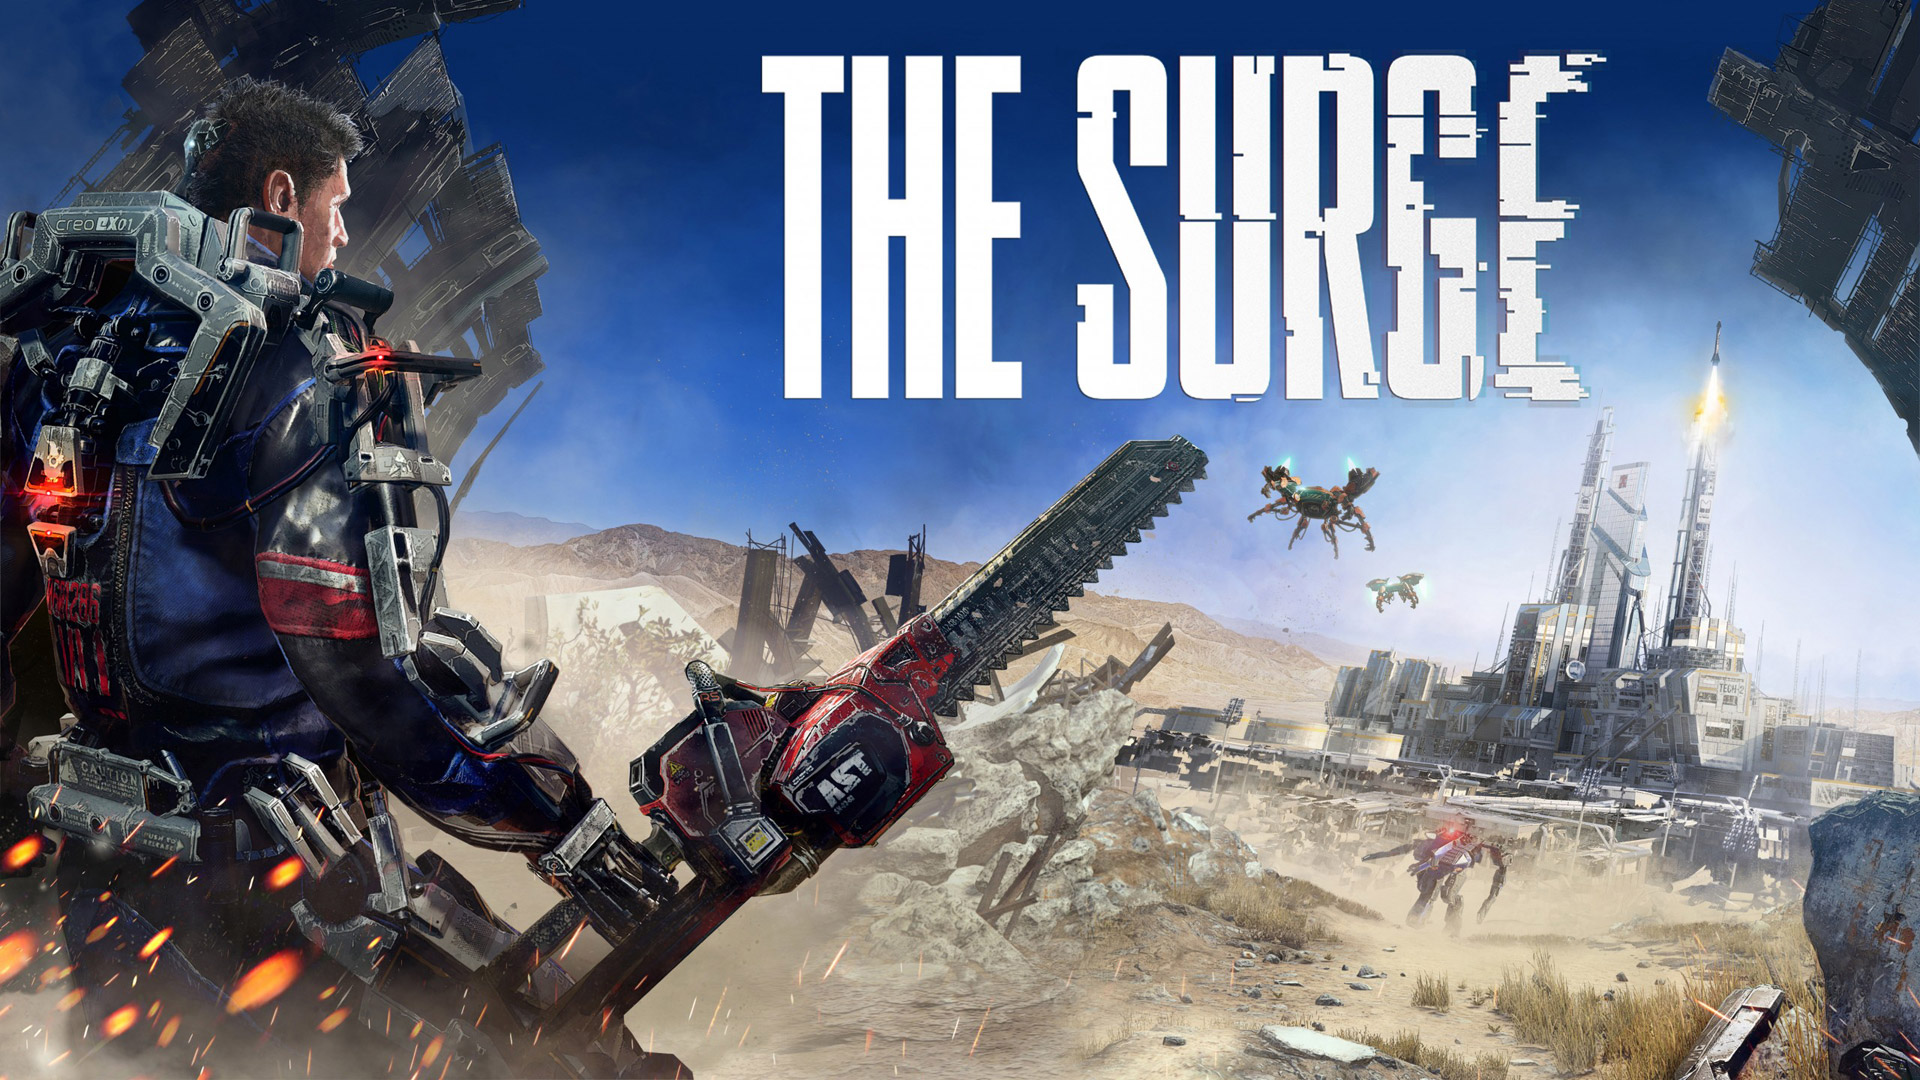 The Surge Wallpaper in 1920x1080